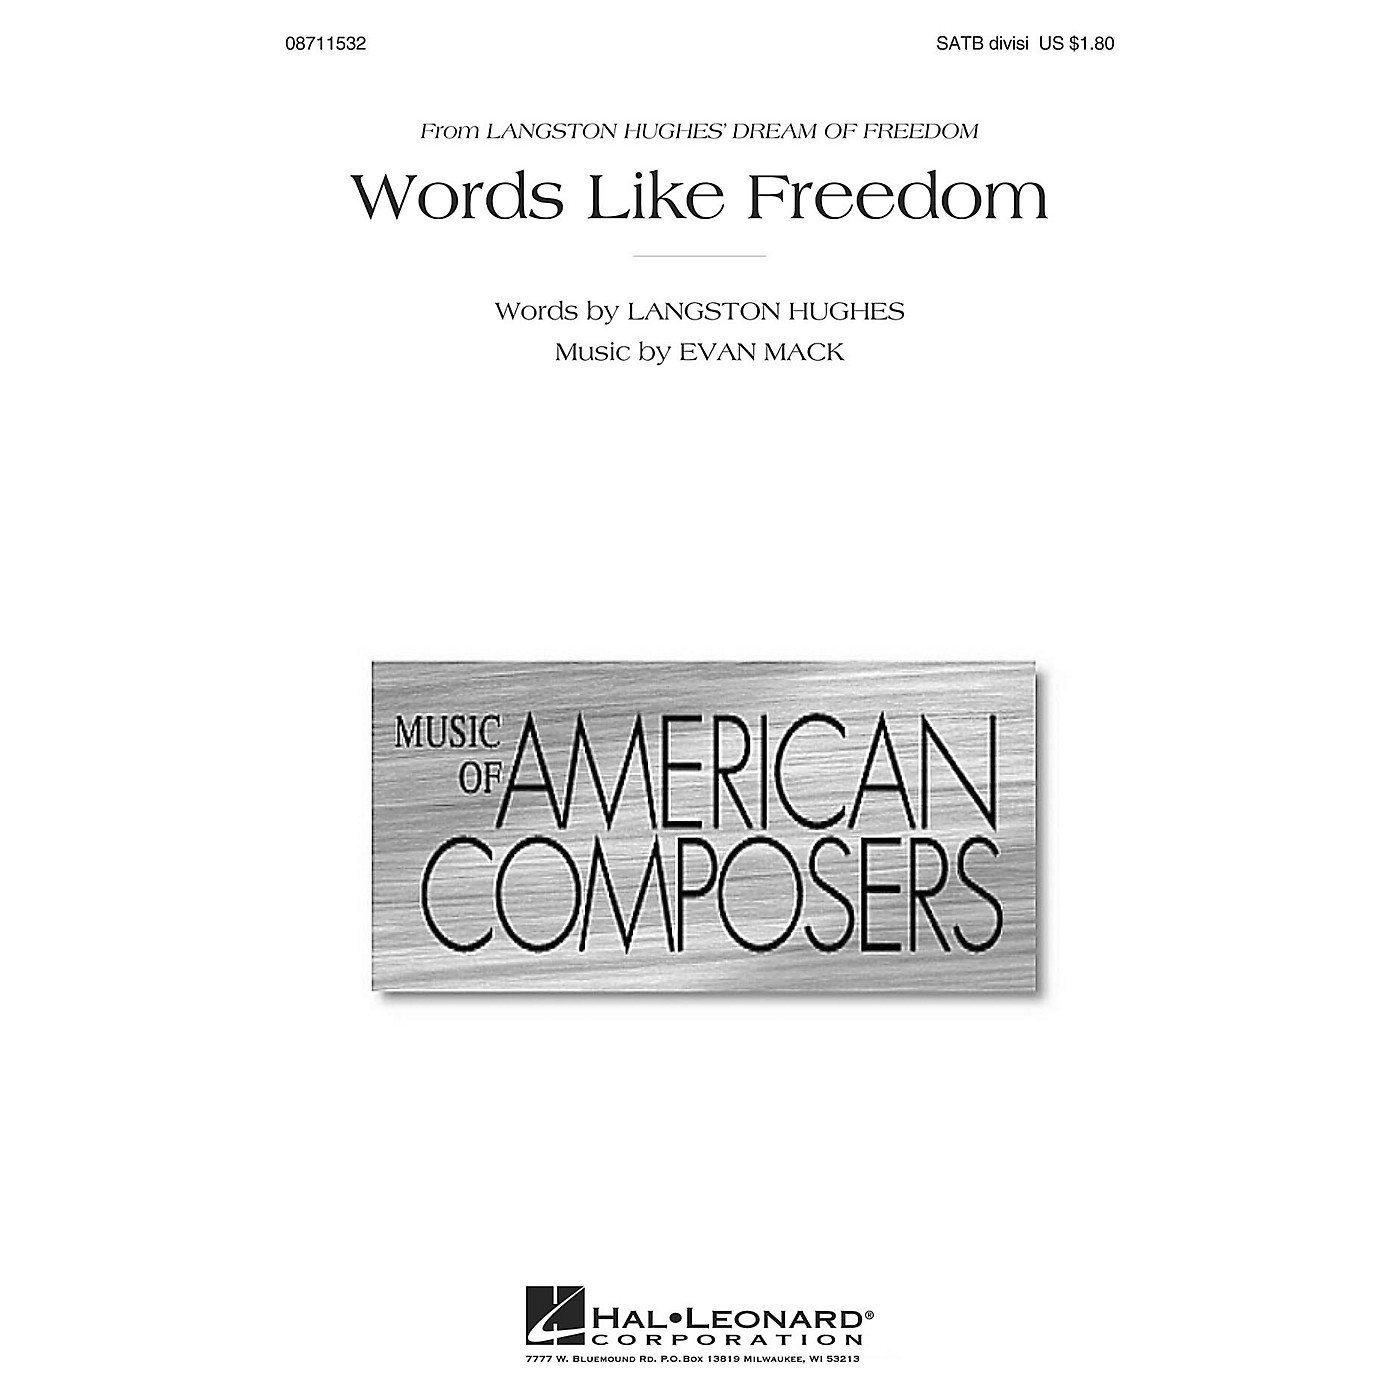 Hal Leonard Words Like Freedom (from Langston Hughes' Dream of Freedom) SATB composed by Evan Mack thumbnail